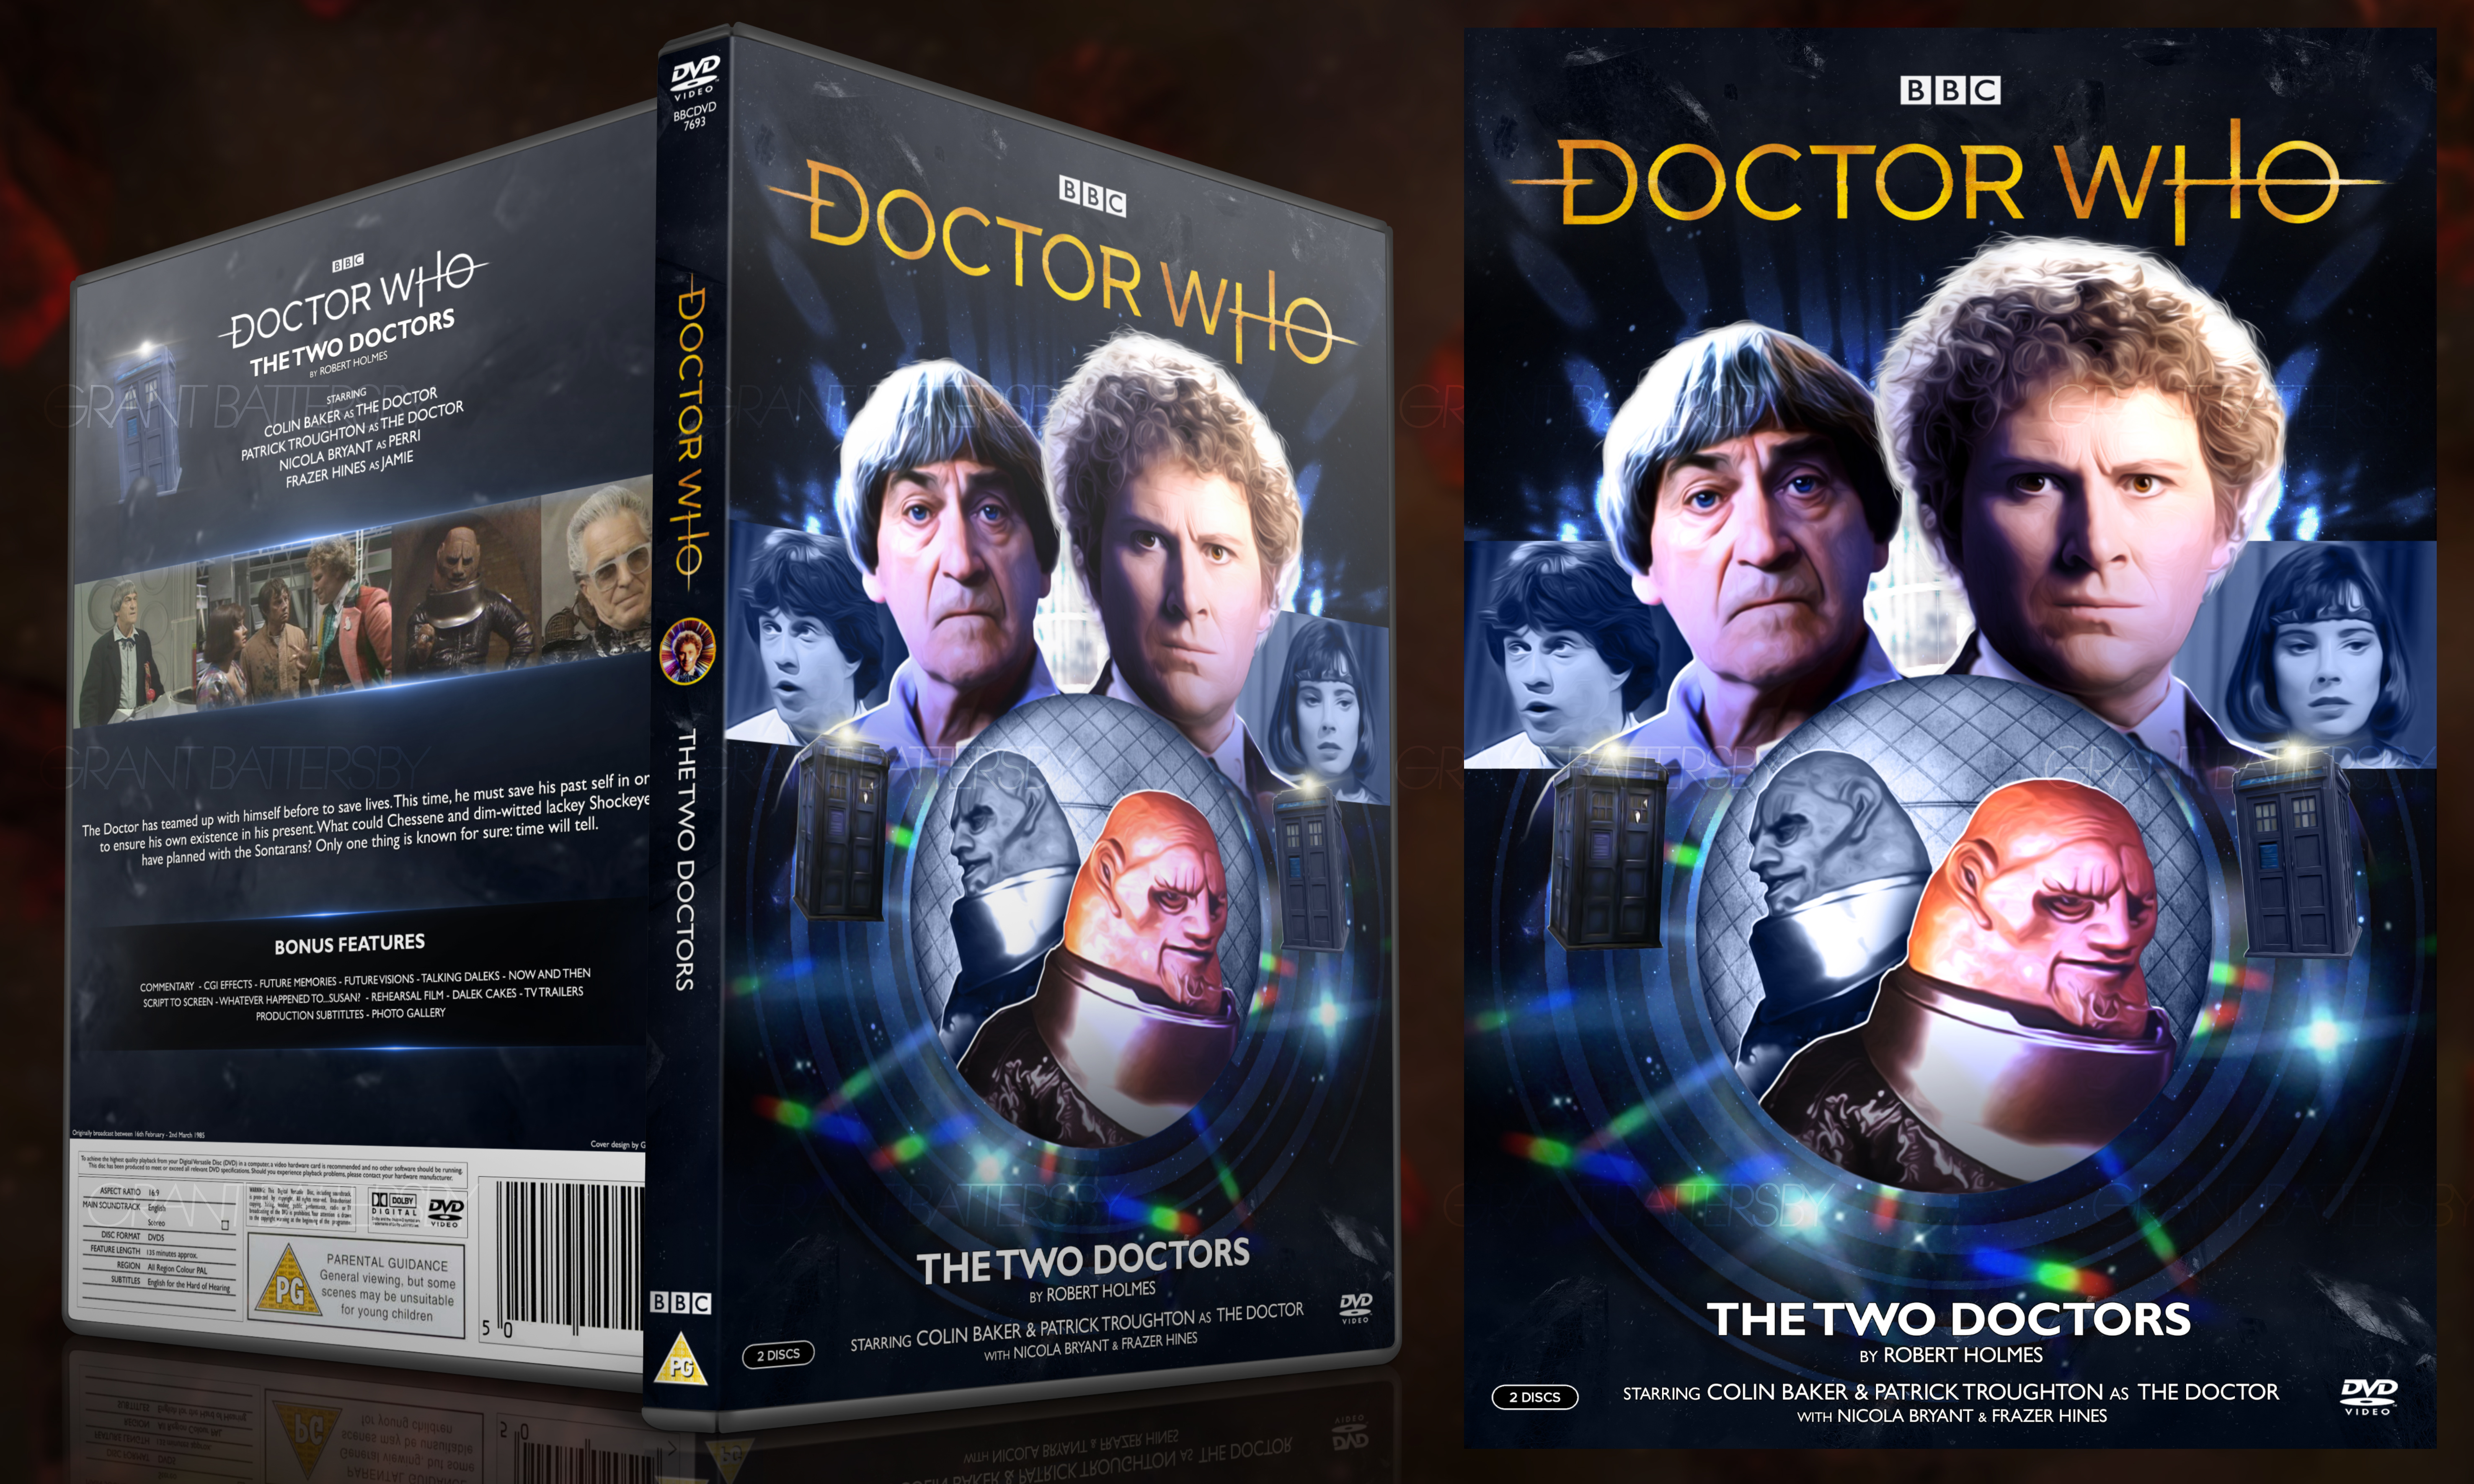 Doctor Who - The Two Doctors DVD Cover